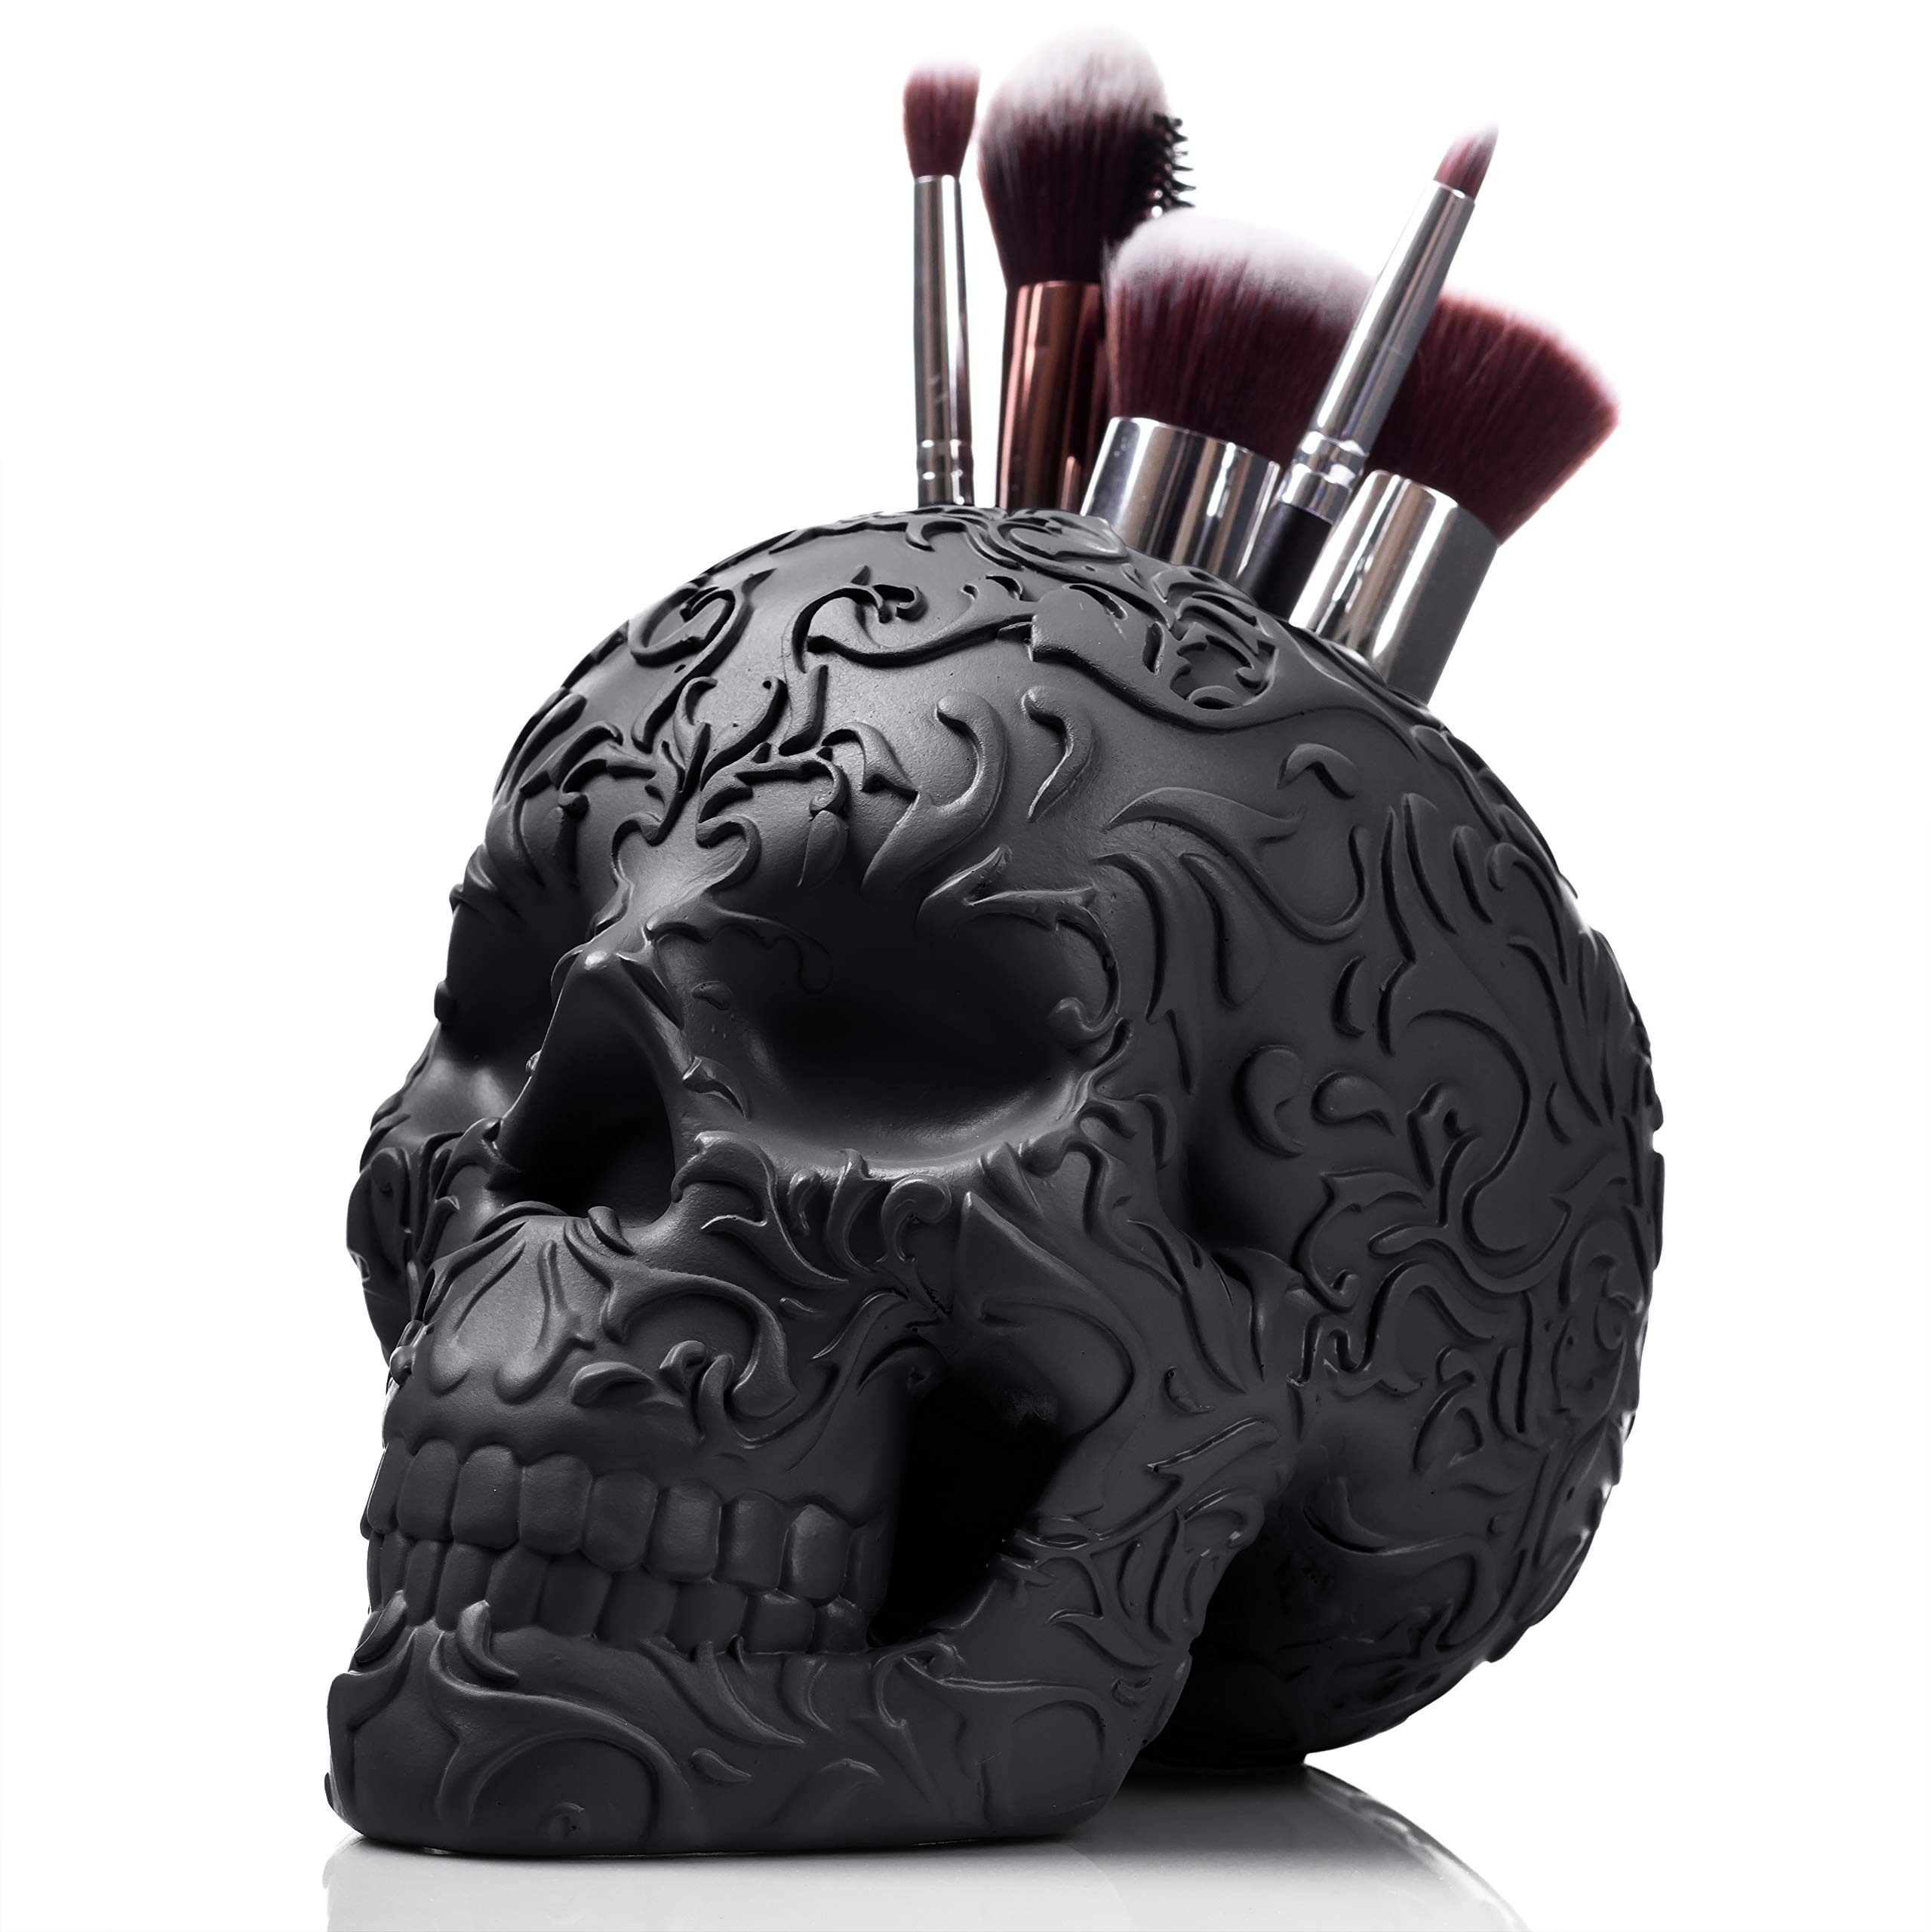 Skull Makeup Brush Holder/Pen Holder/Vanity Desk Office Organizer Stationary Decor Planter (JET BLACK) by Wicked Vanity Beauty